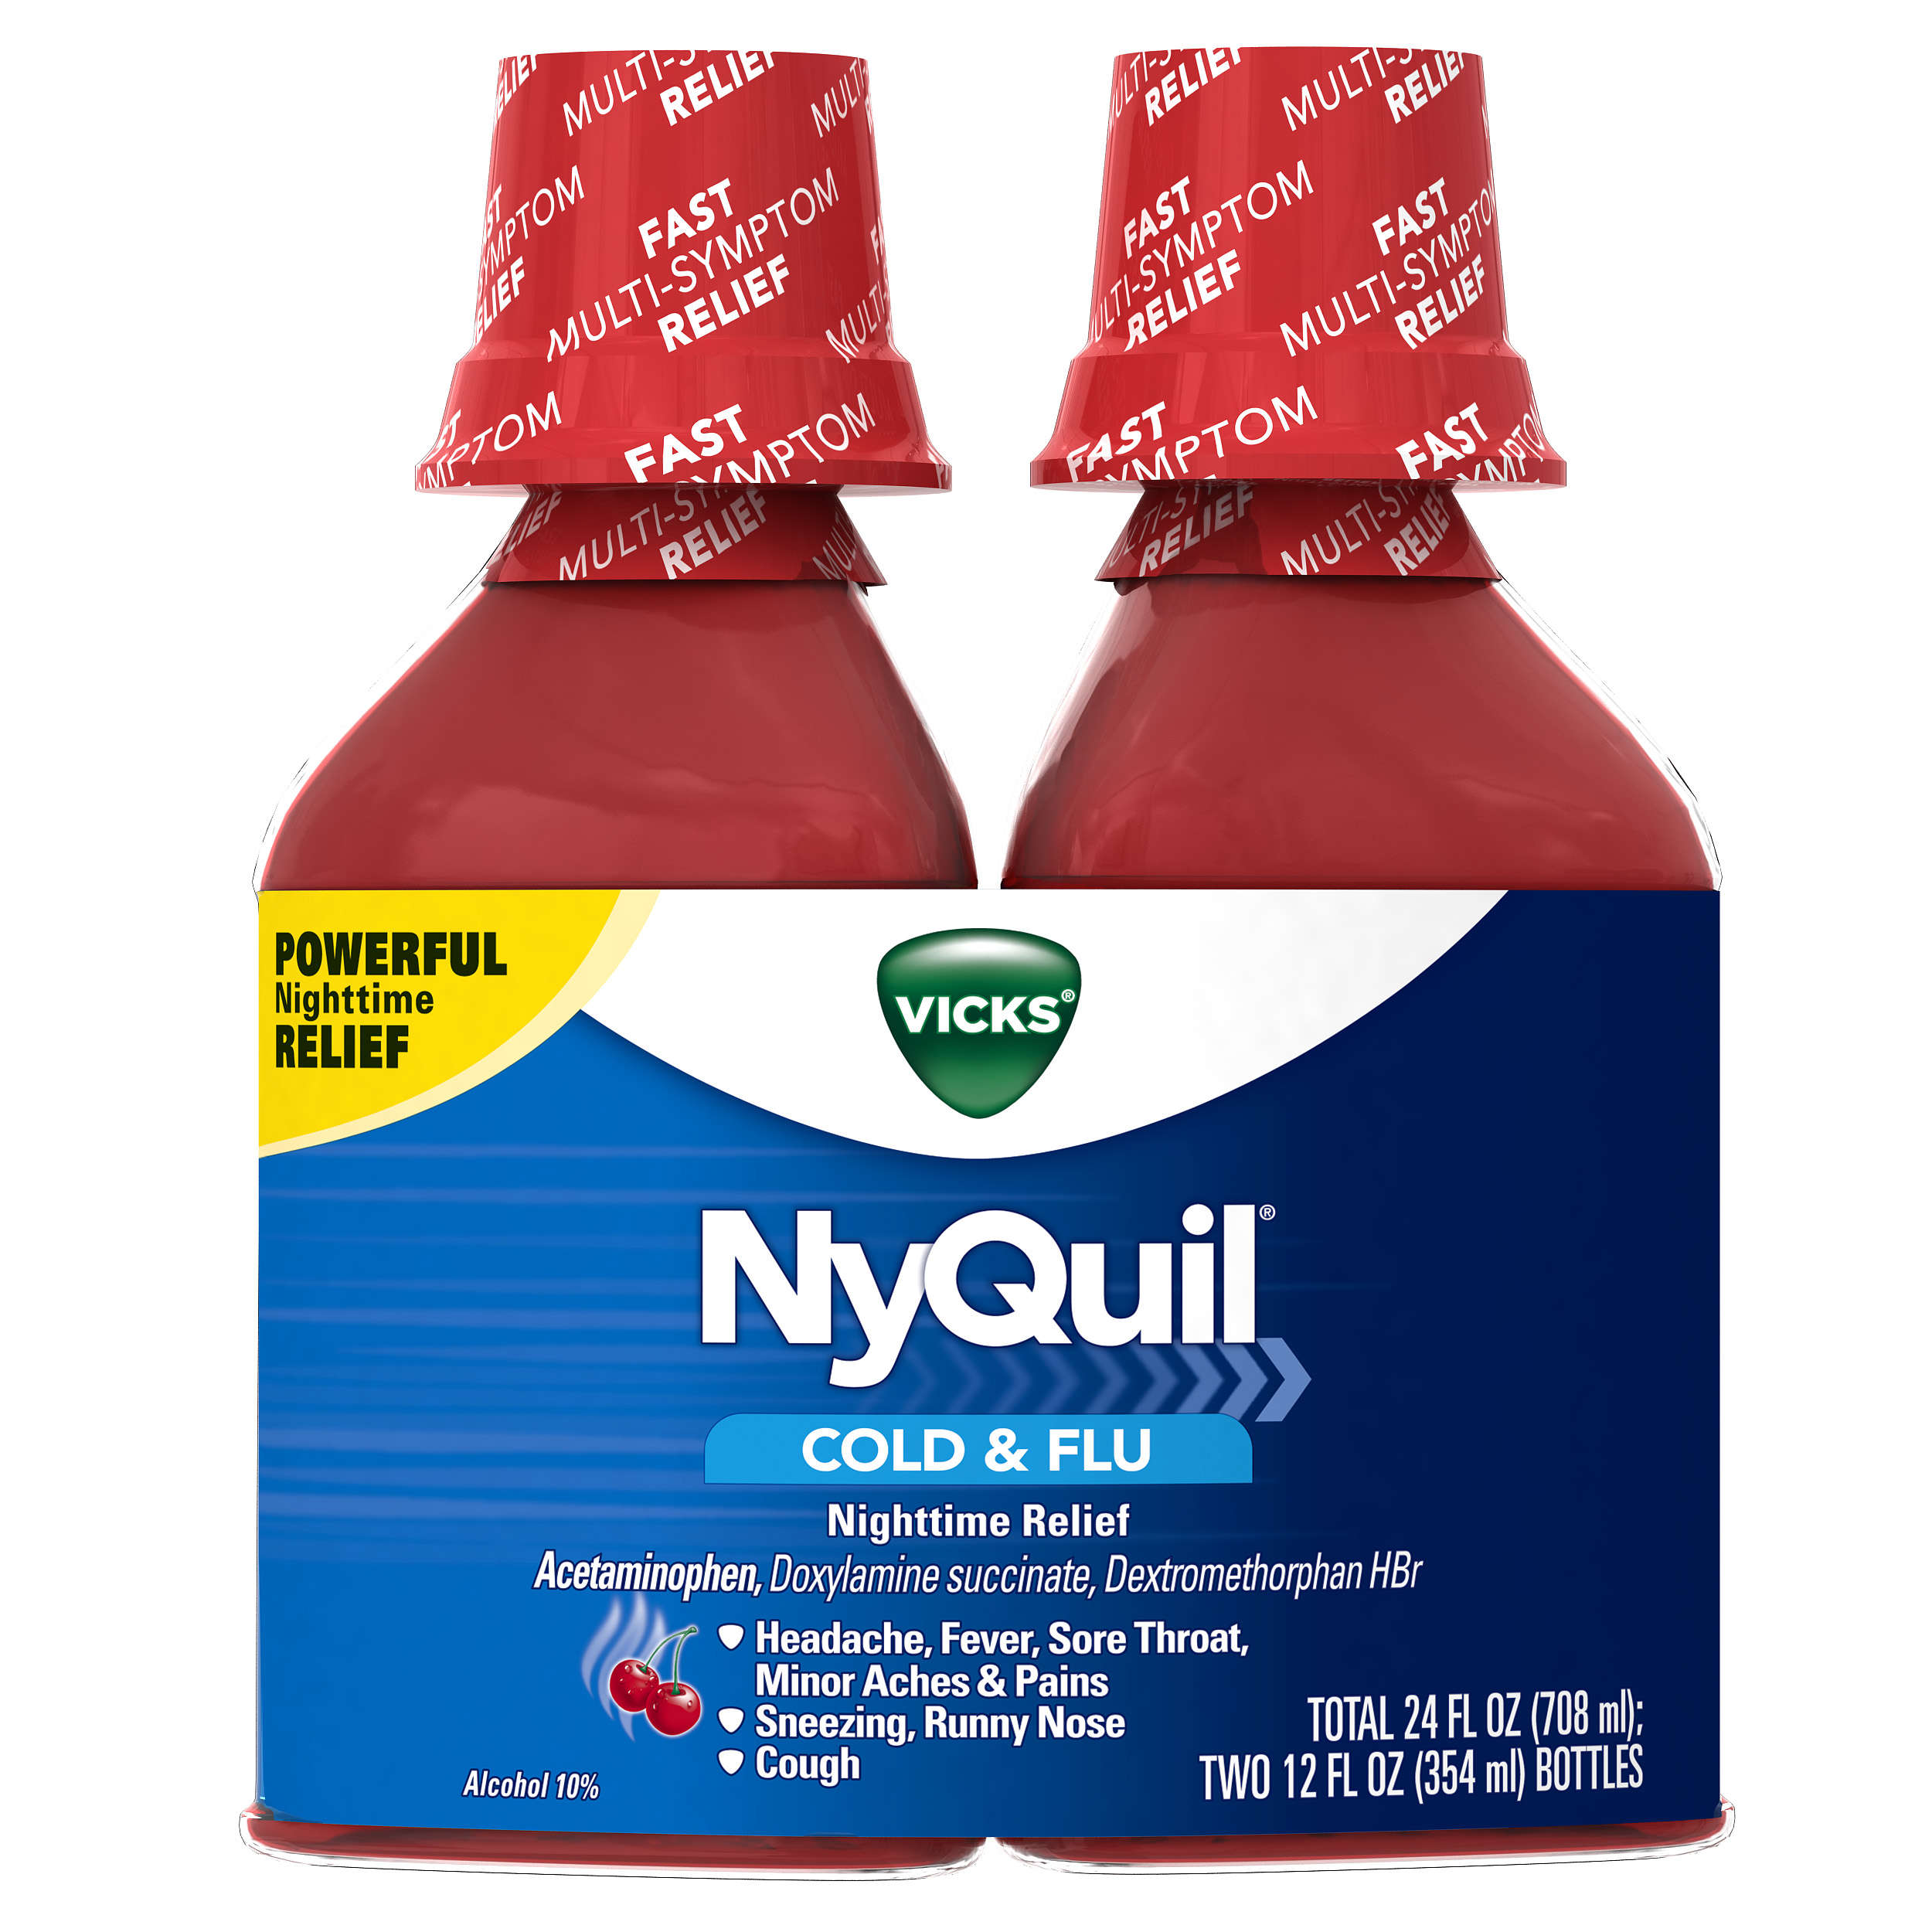 Vicks NyQuil Cold & Flu Nighttime Relief Cherry Flavor Liquid 2 x 12 fl oz